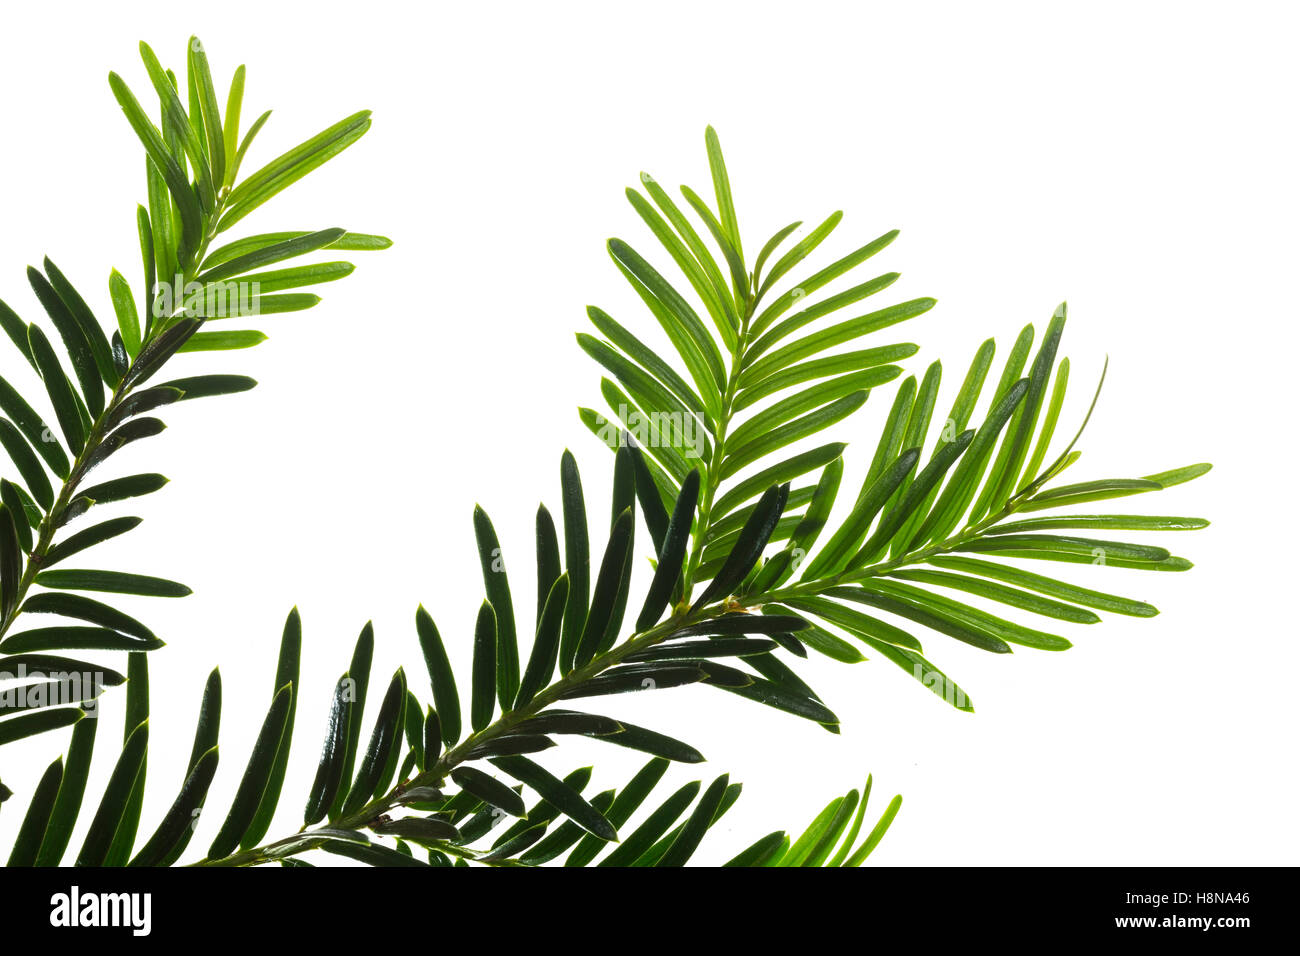 Europäische Eibe, Eibenbaum, Taxus baccata, European yew, Common yew, yew, L'If commun, If Stock Photo